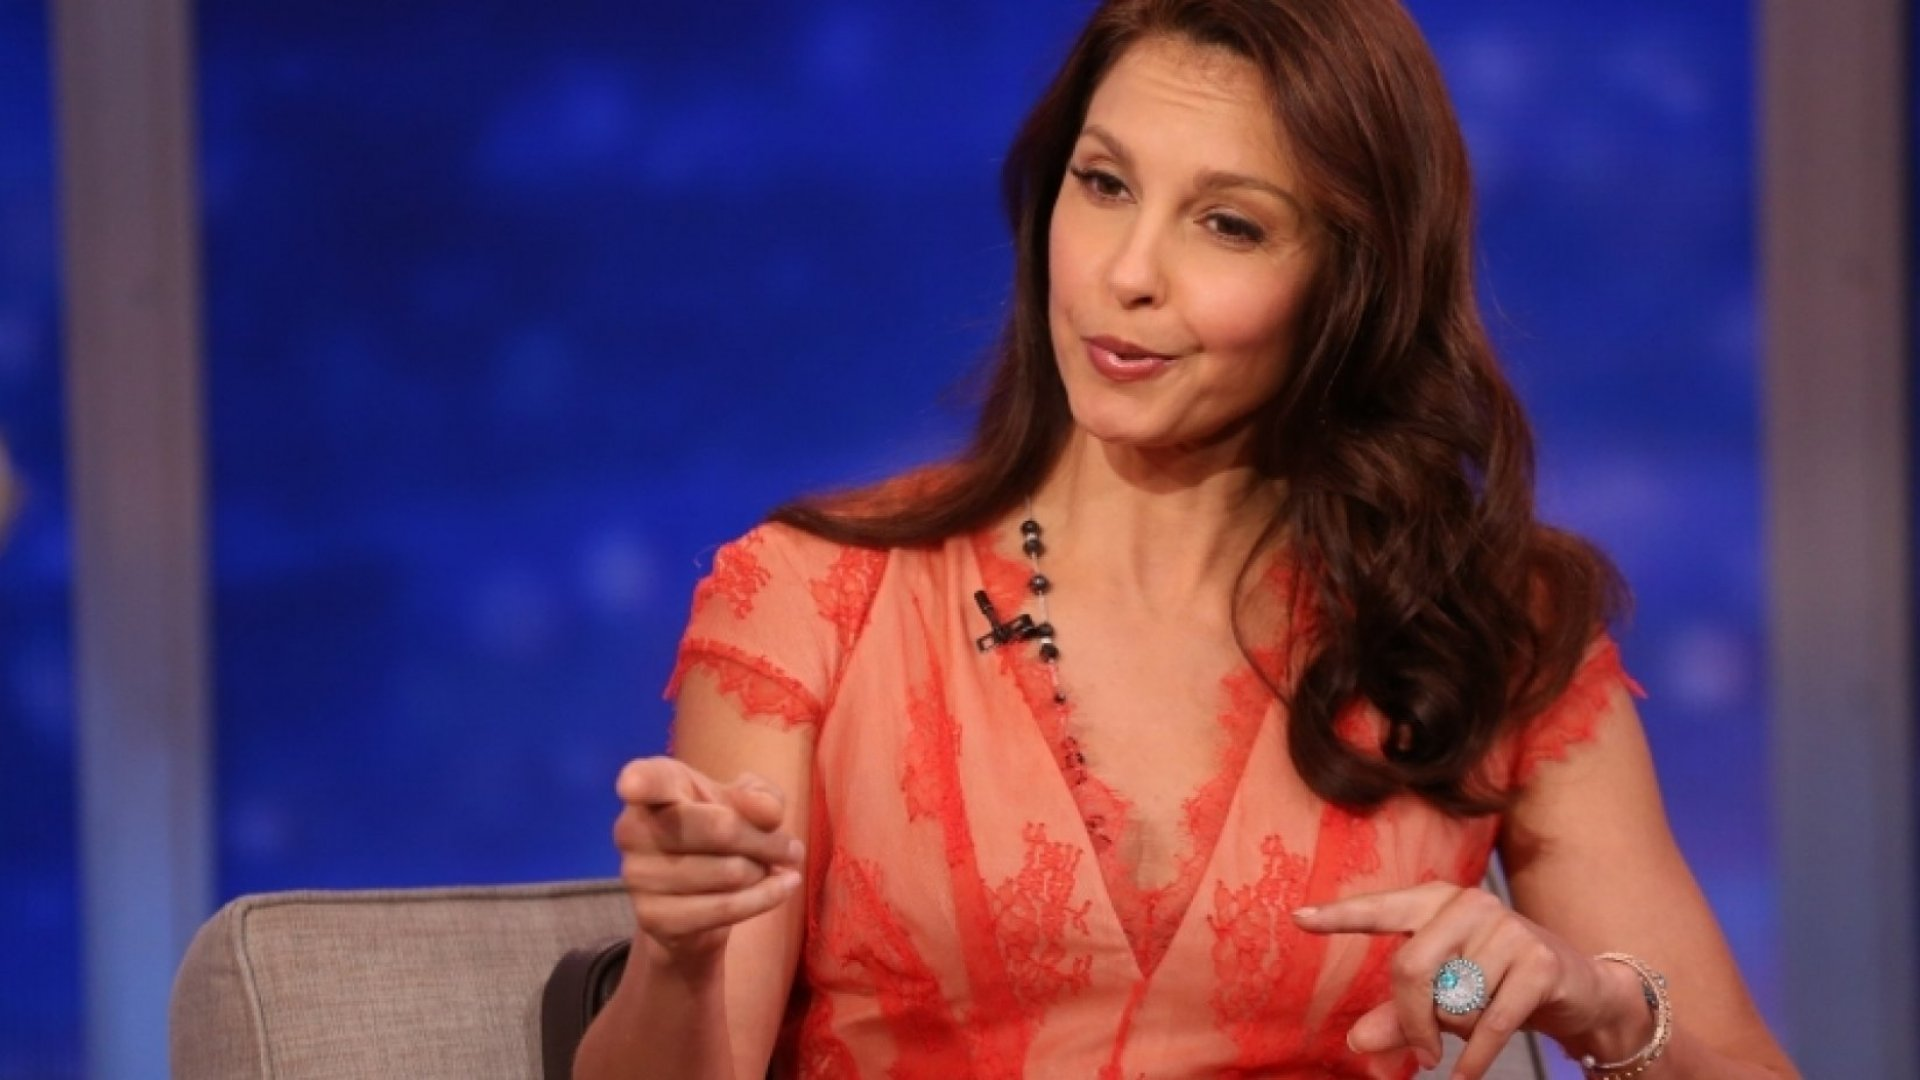 Harassed on Twitter? Here's How Ashley Judd and Others Are Fighting Back